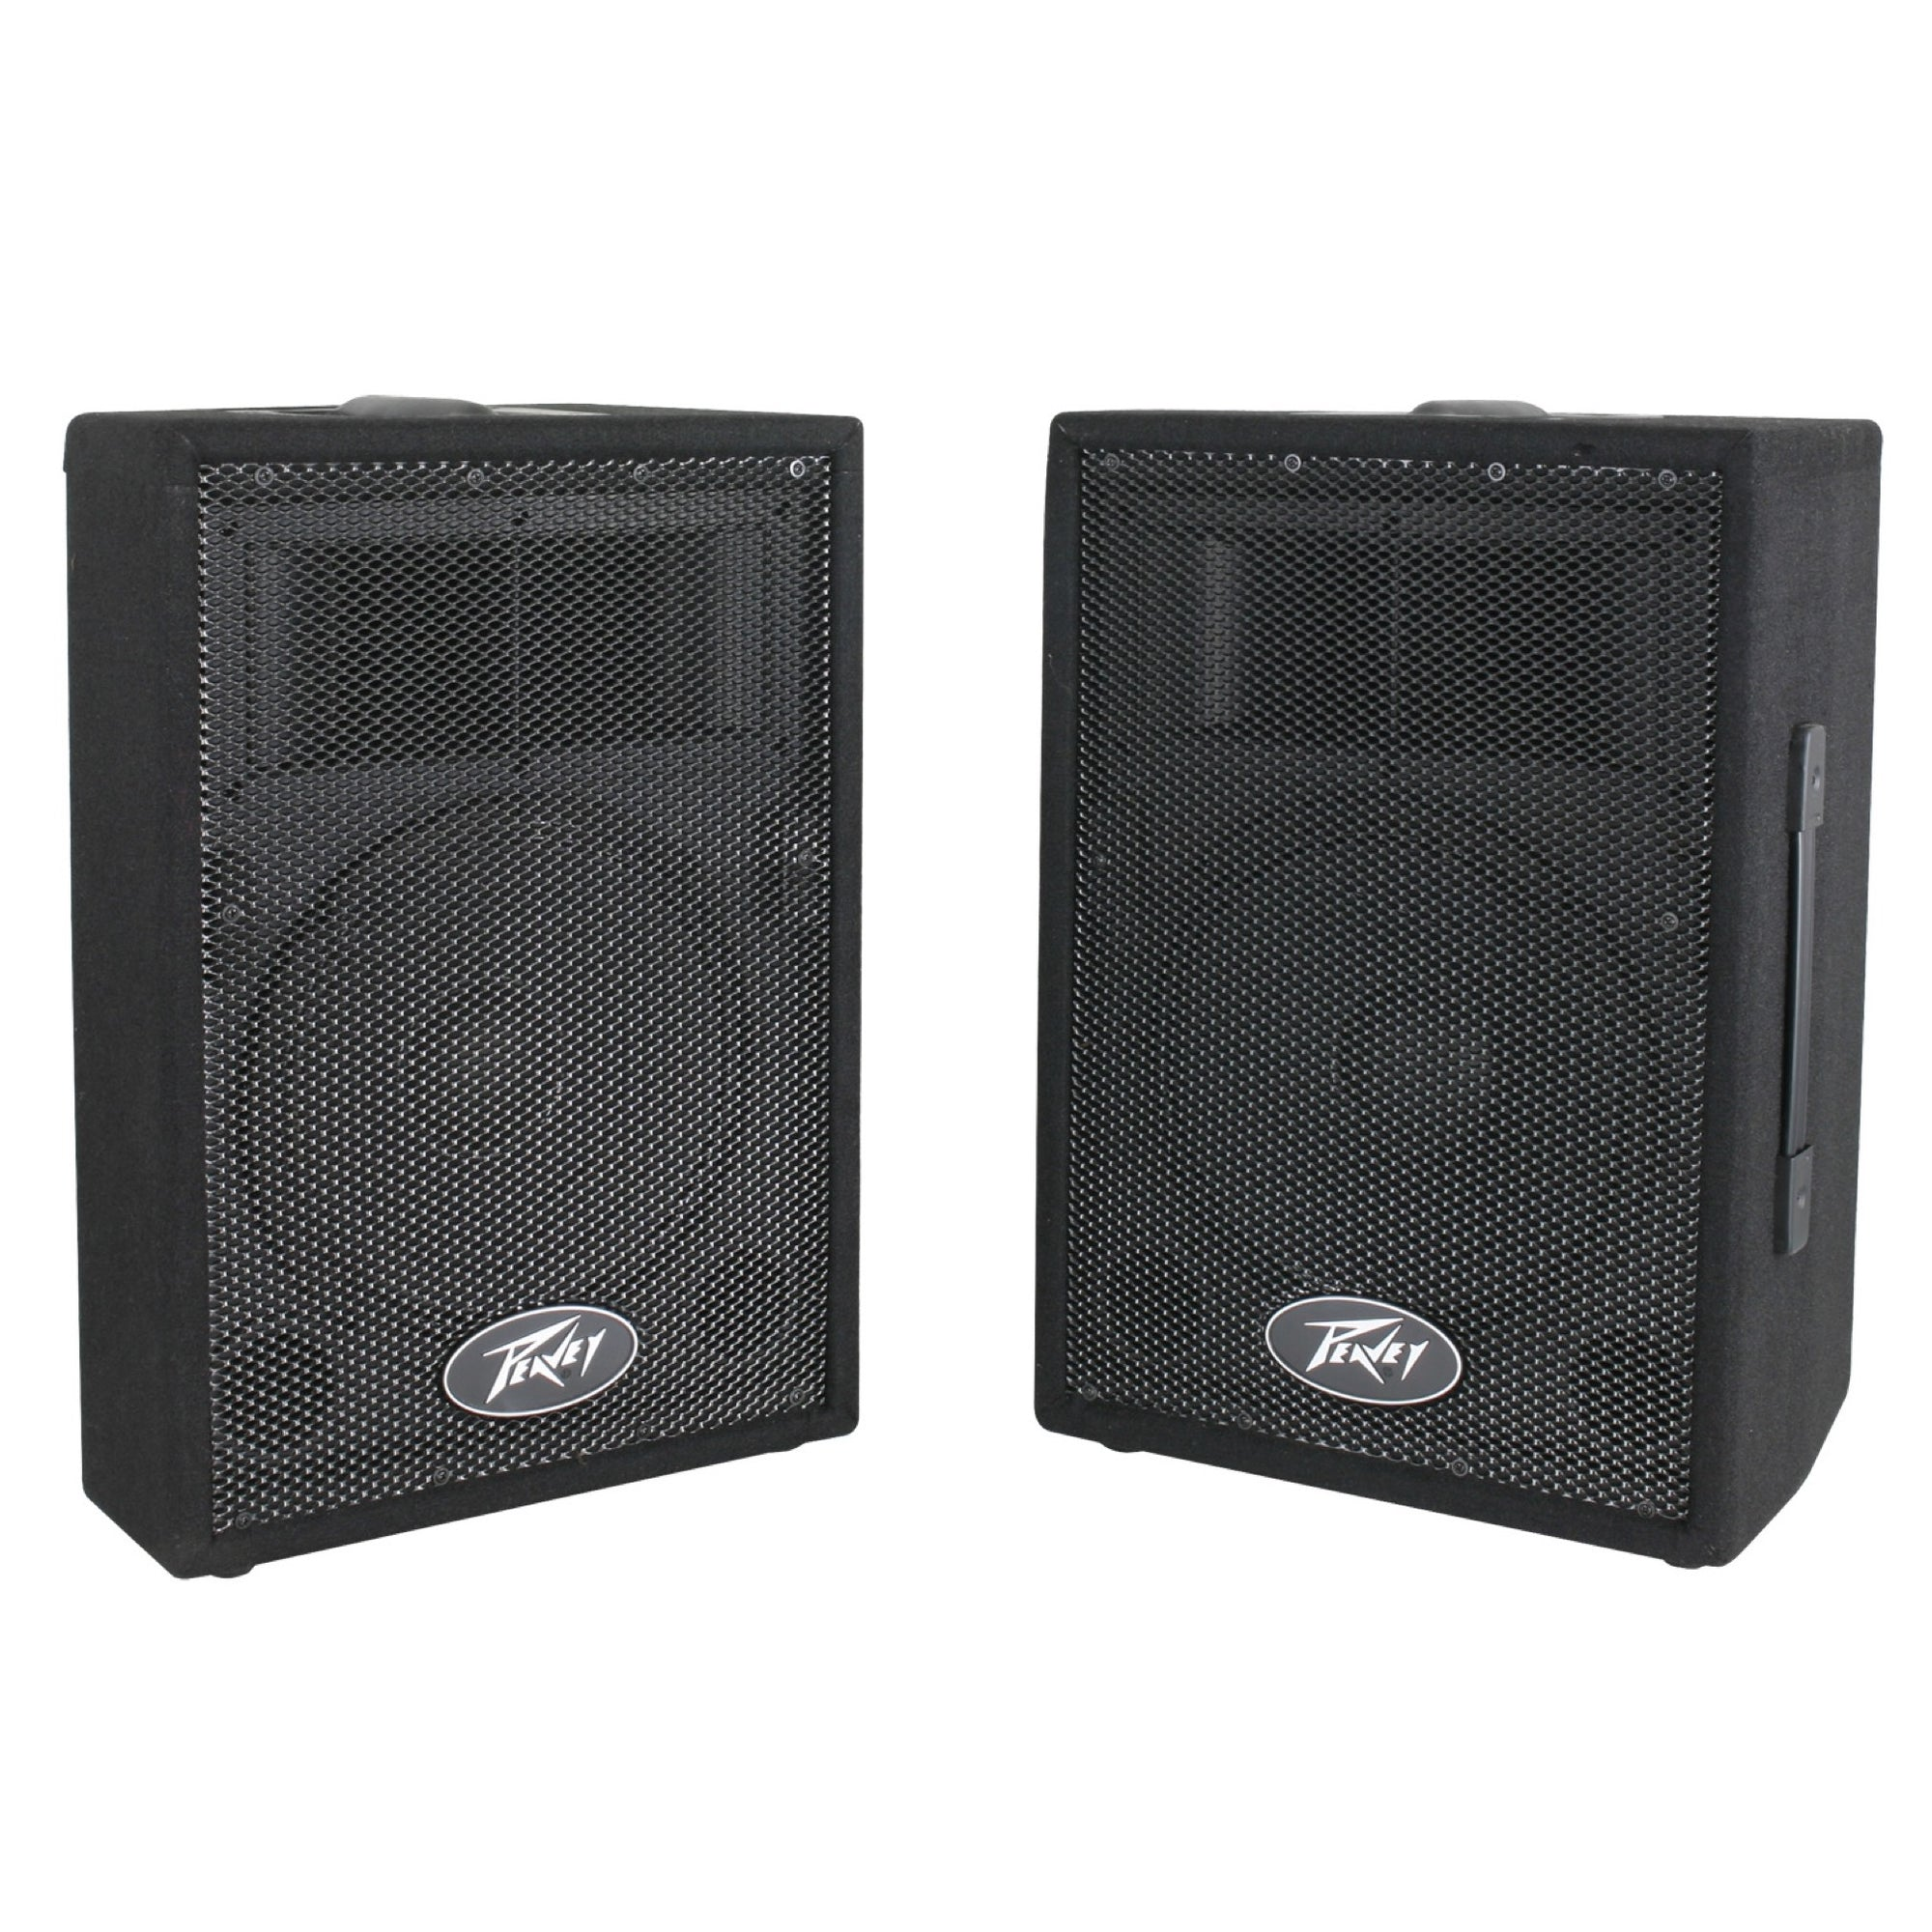 Peavey PVi 10 Passive, Unpowered PA Speakers (100 Watts, 1x10 Inch), Pair